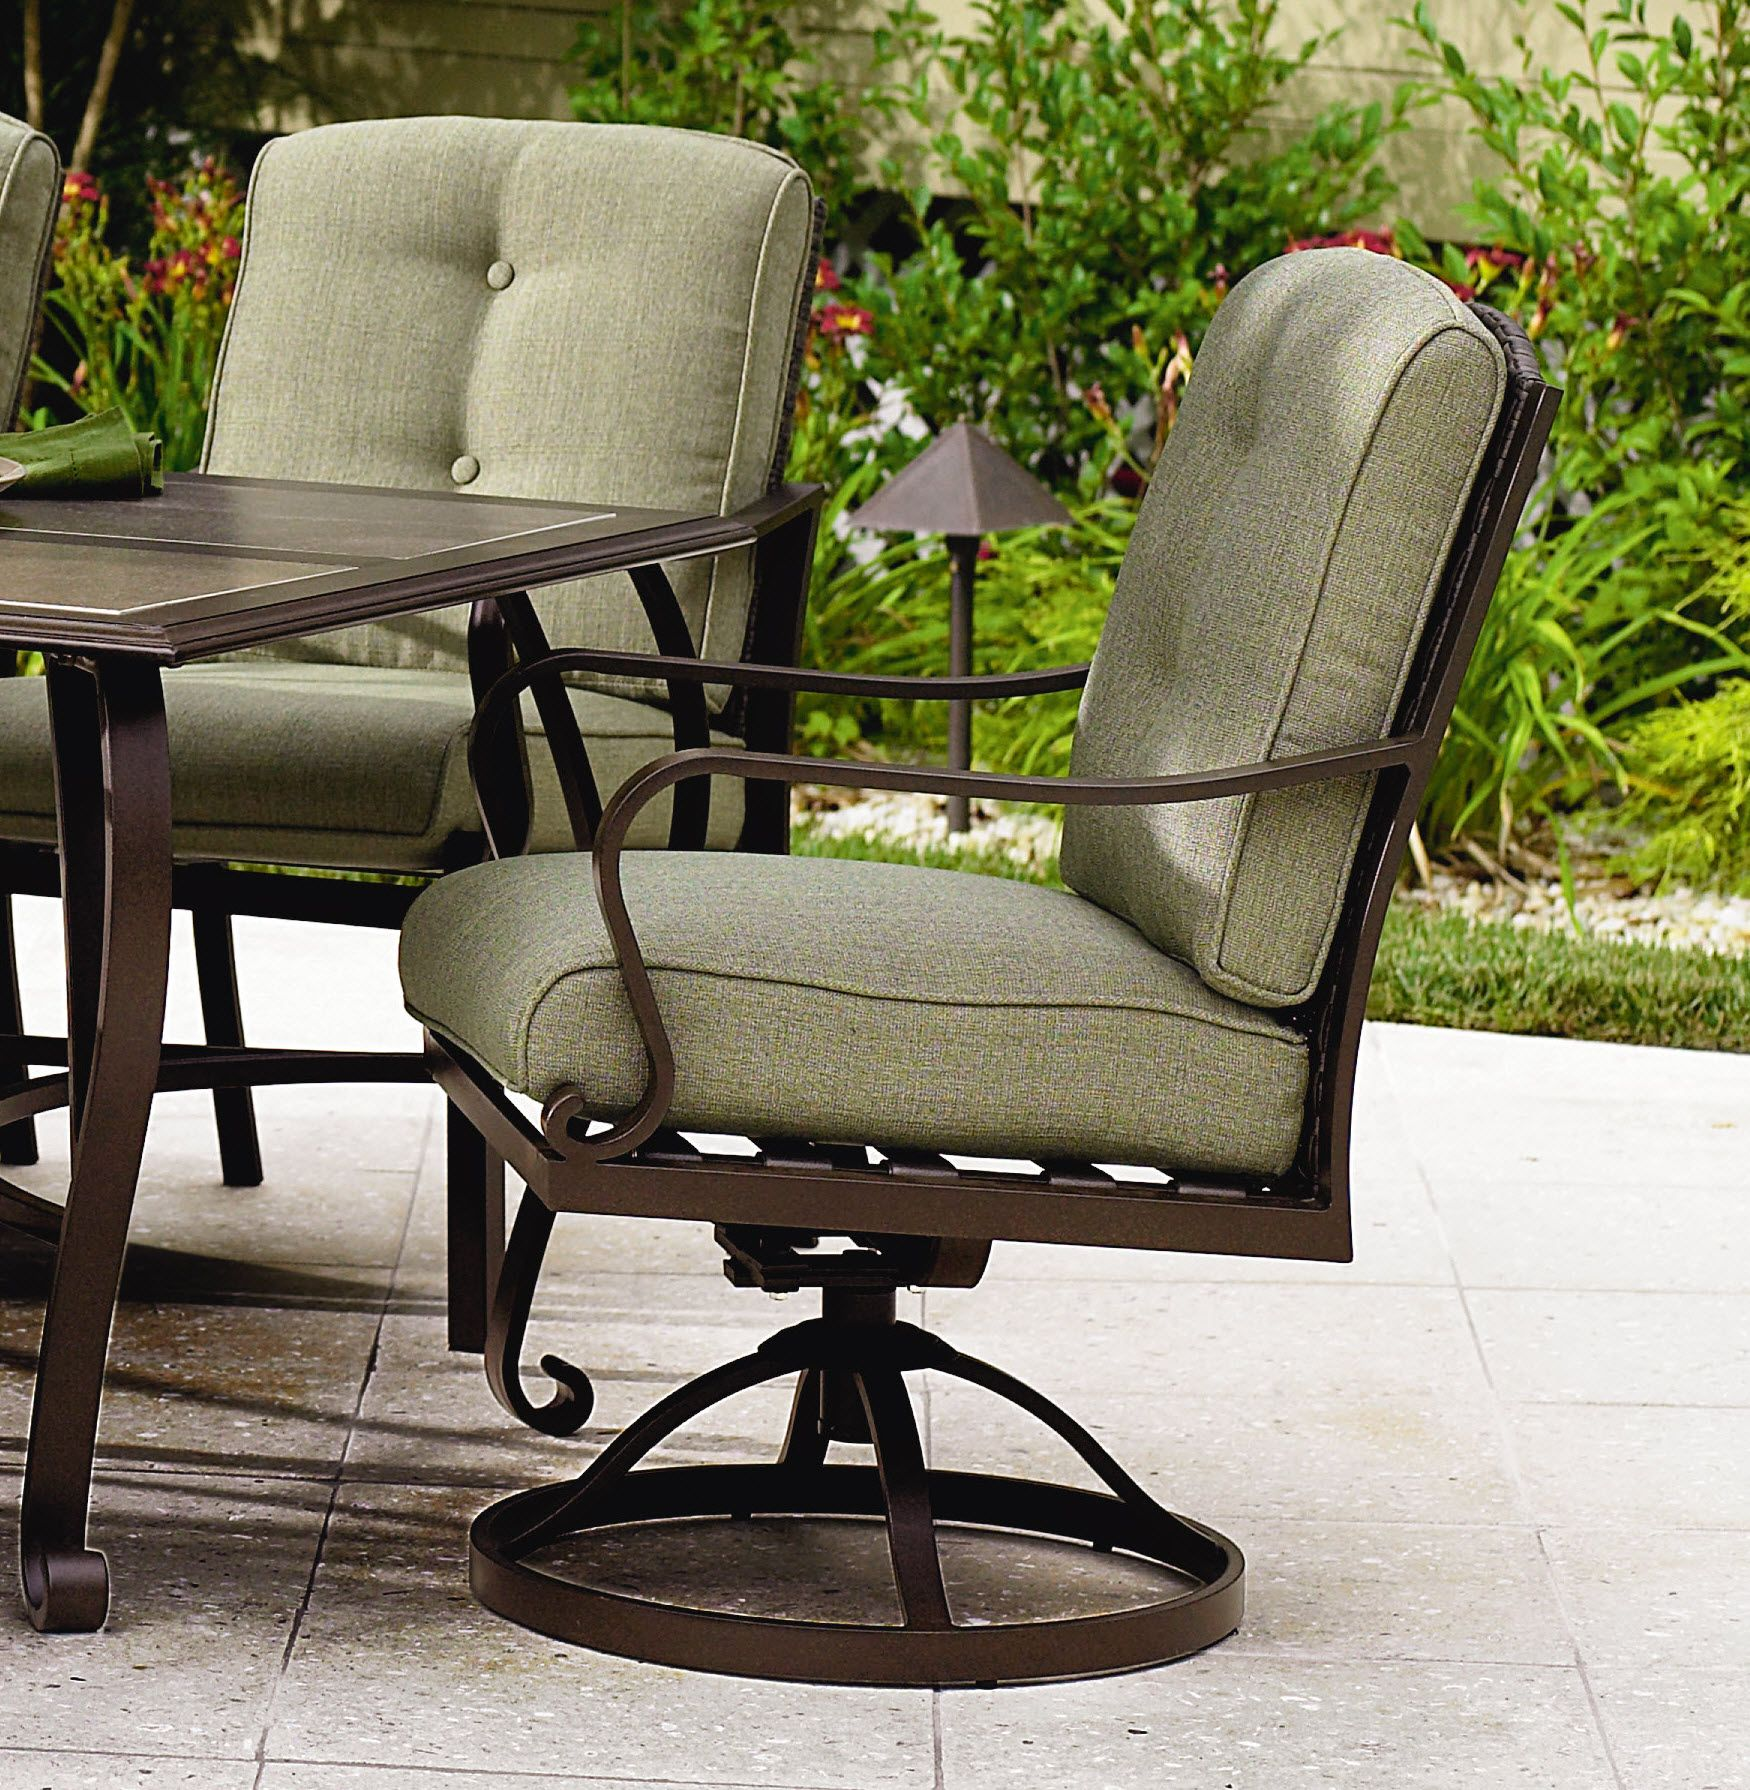 La-Z-Boy Outdoor Peyton 3 Pc. Bistro Set